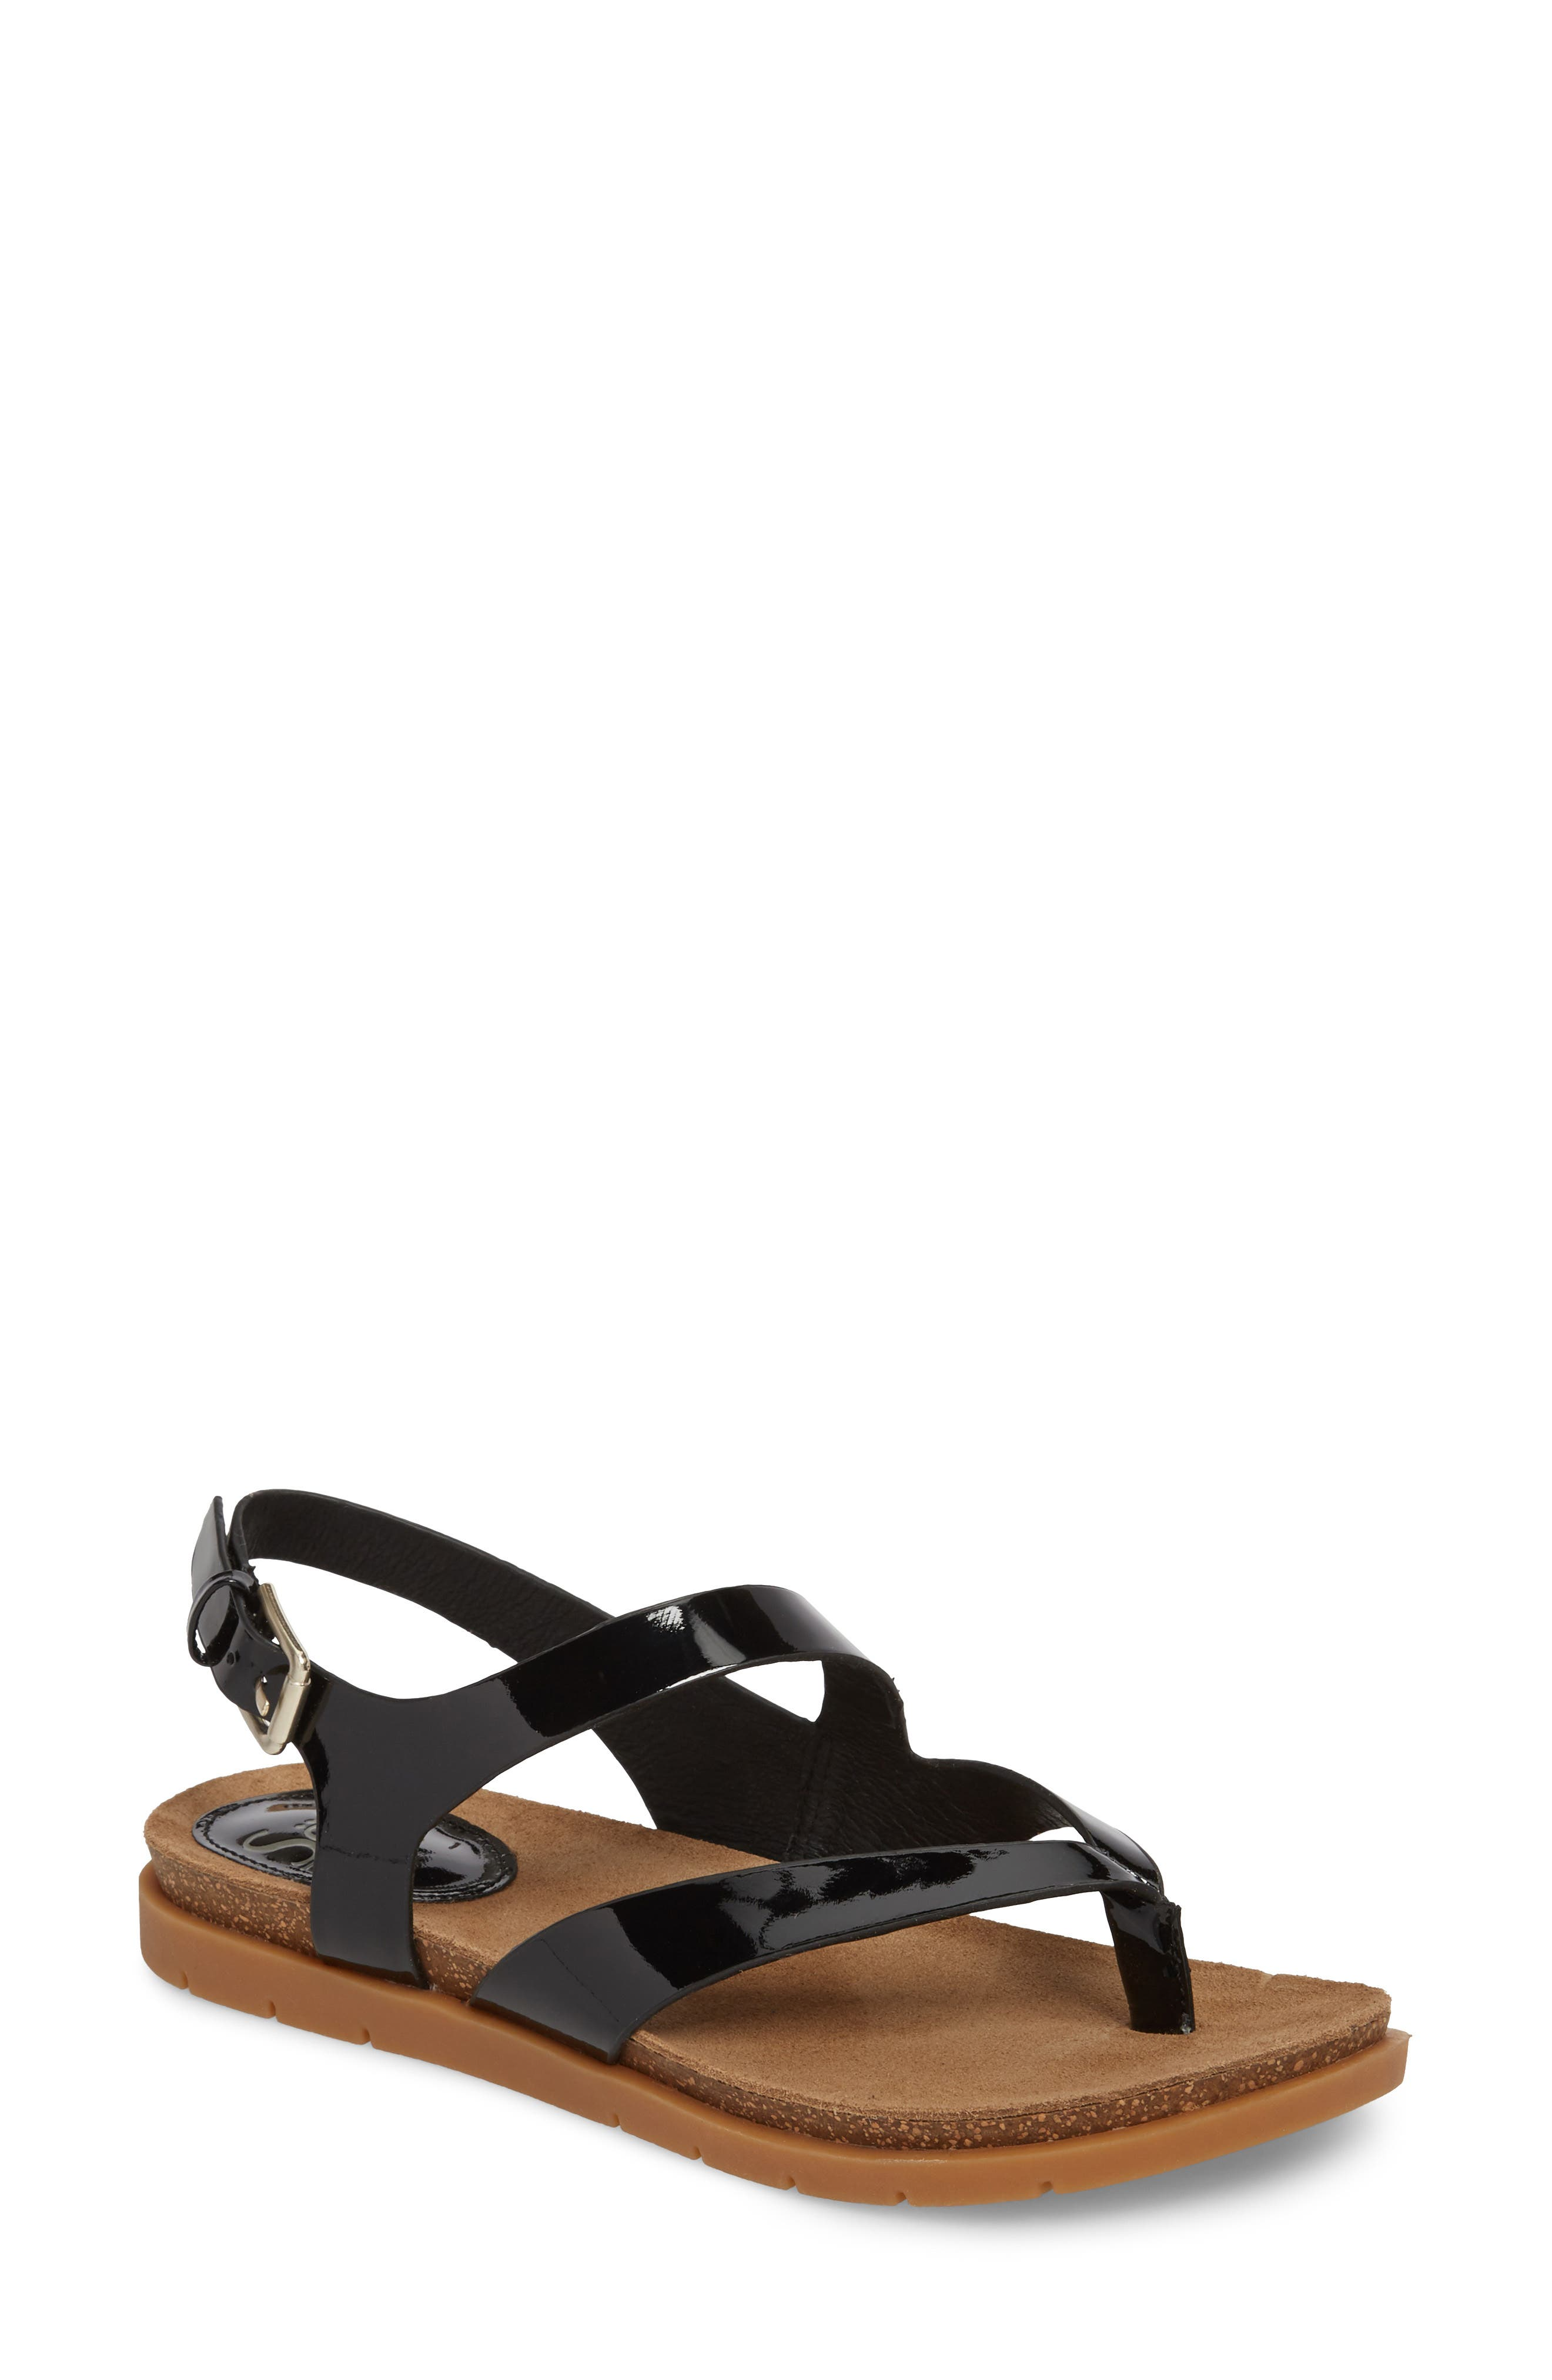 Rory Sandal,                         Main,                         color, 001